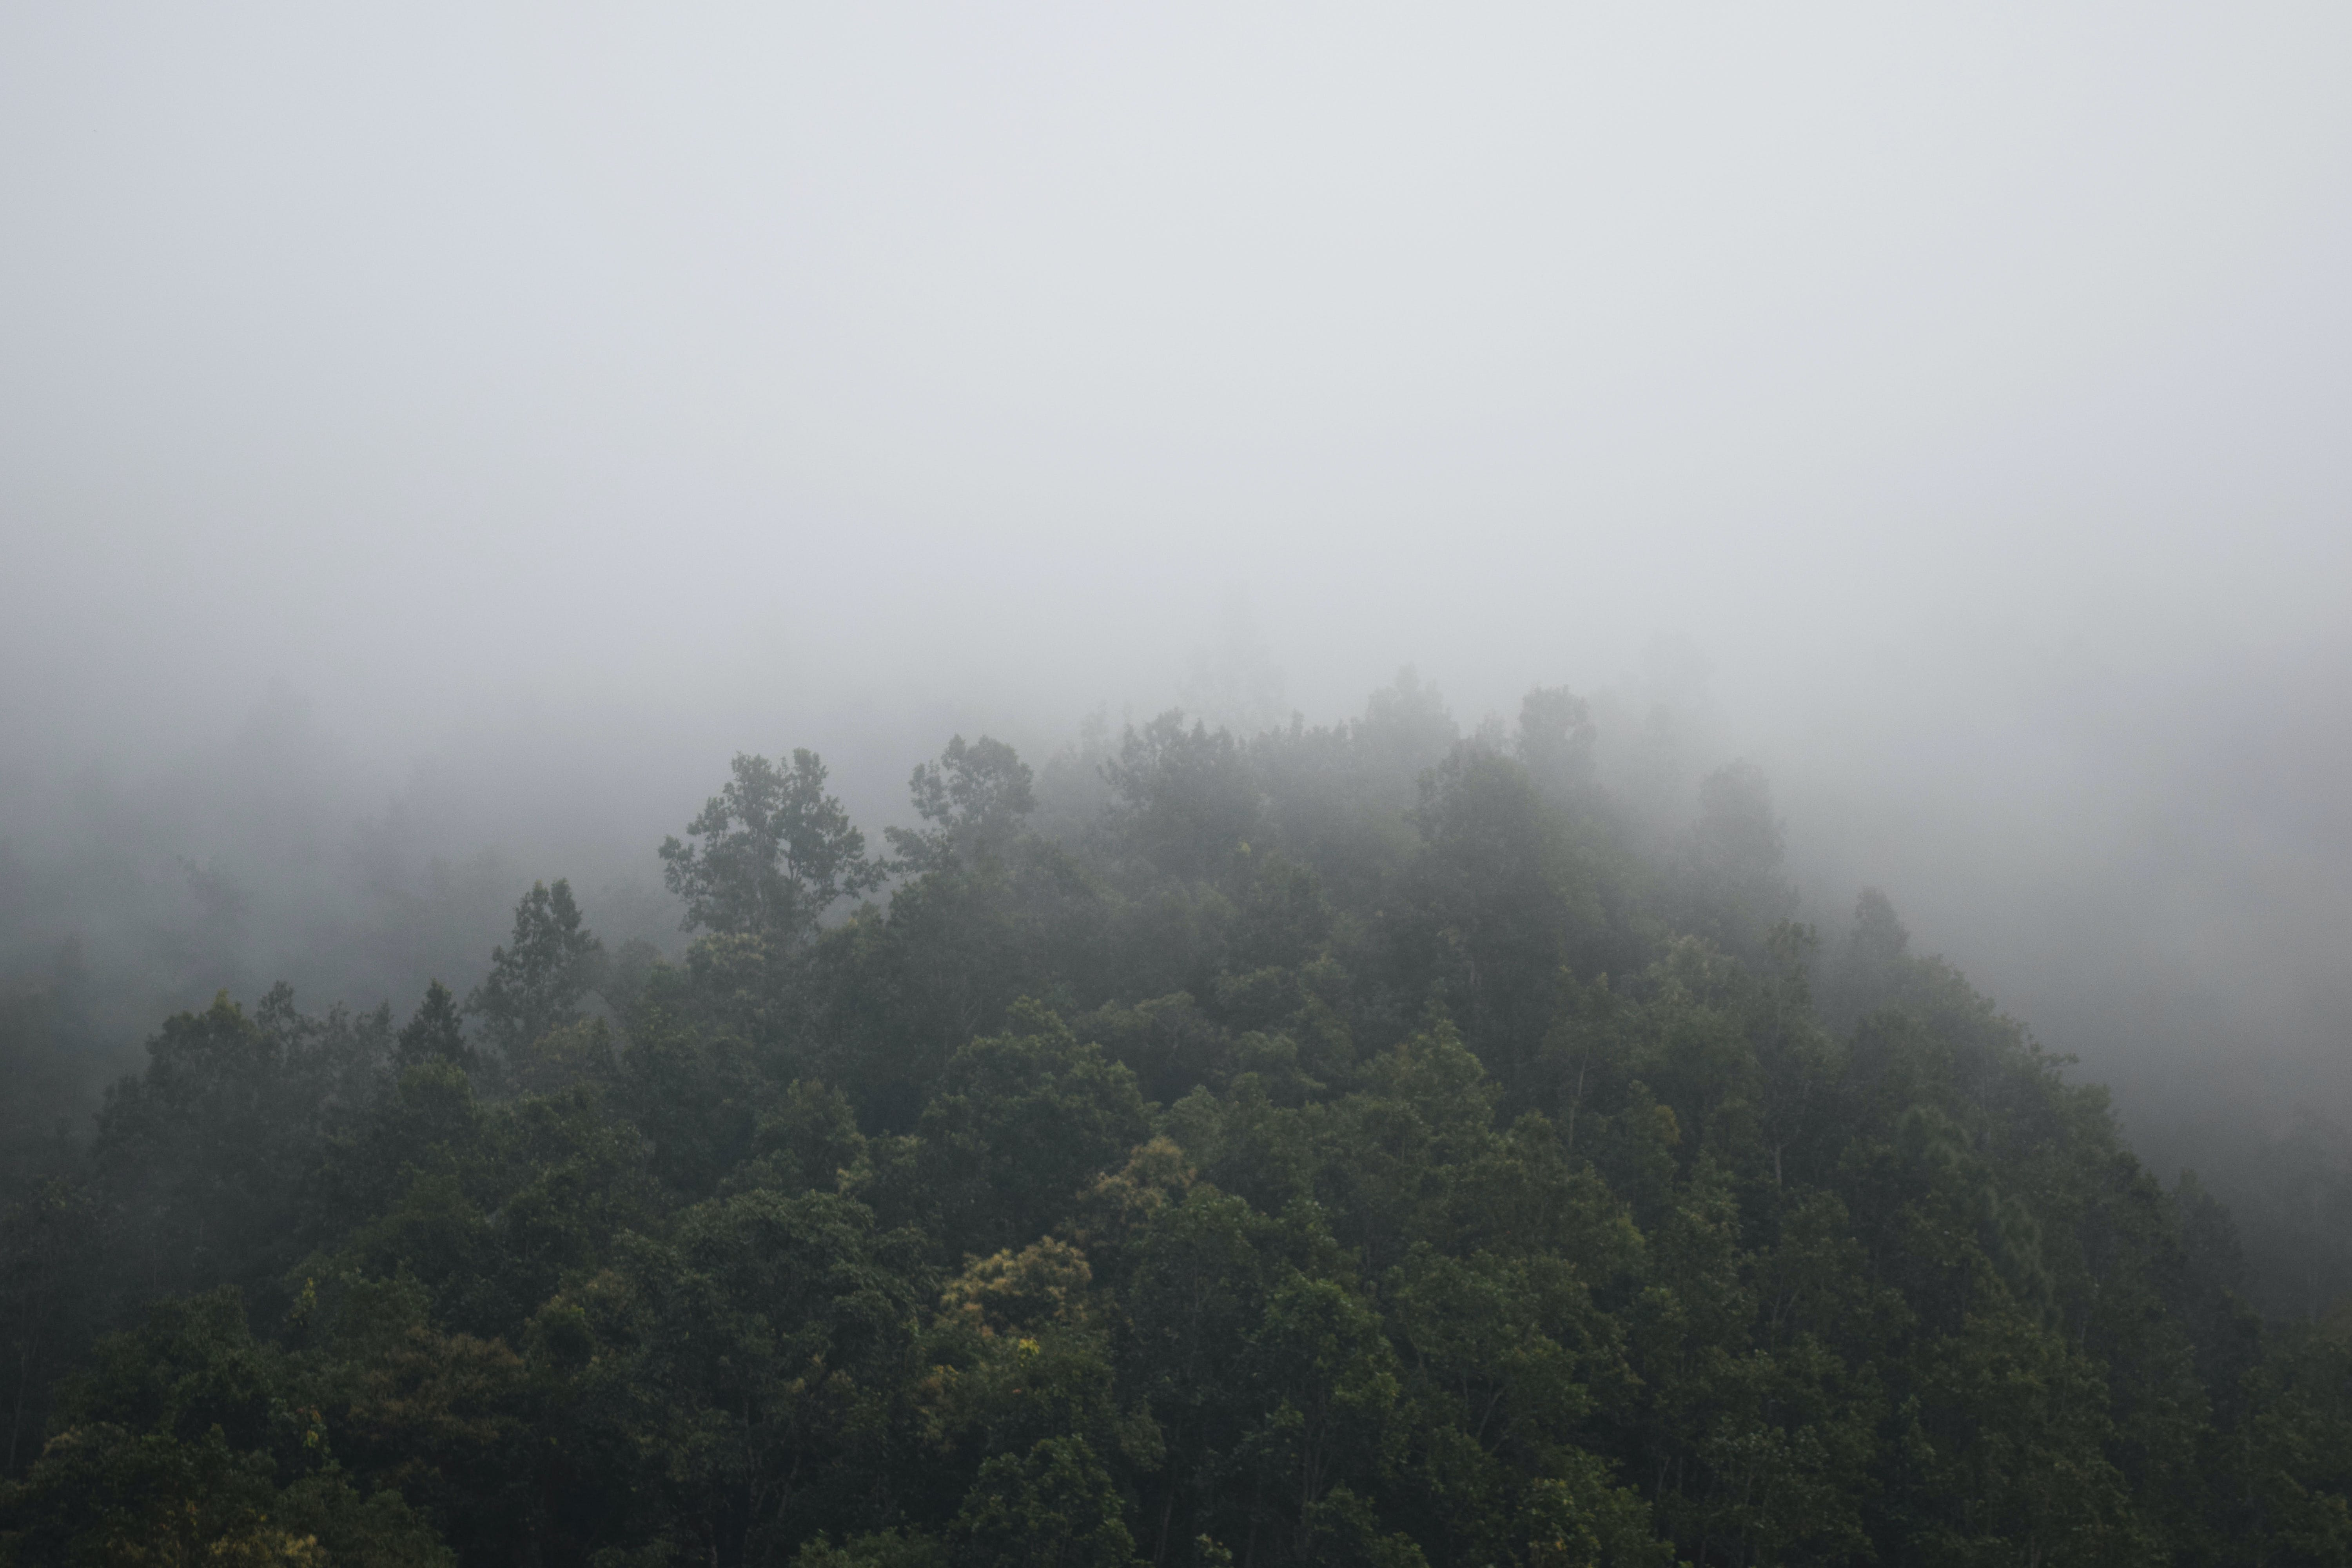 Foggy Mountain With Green Trees